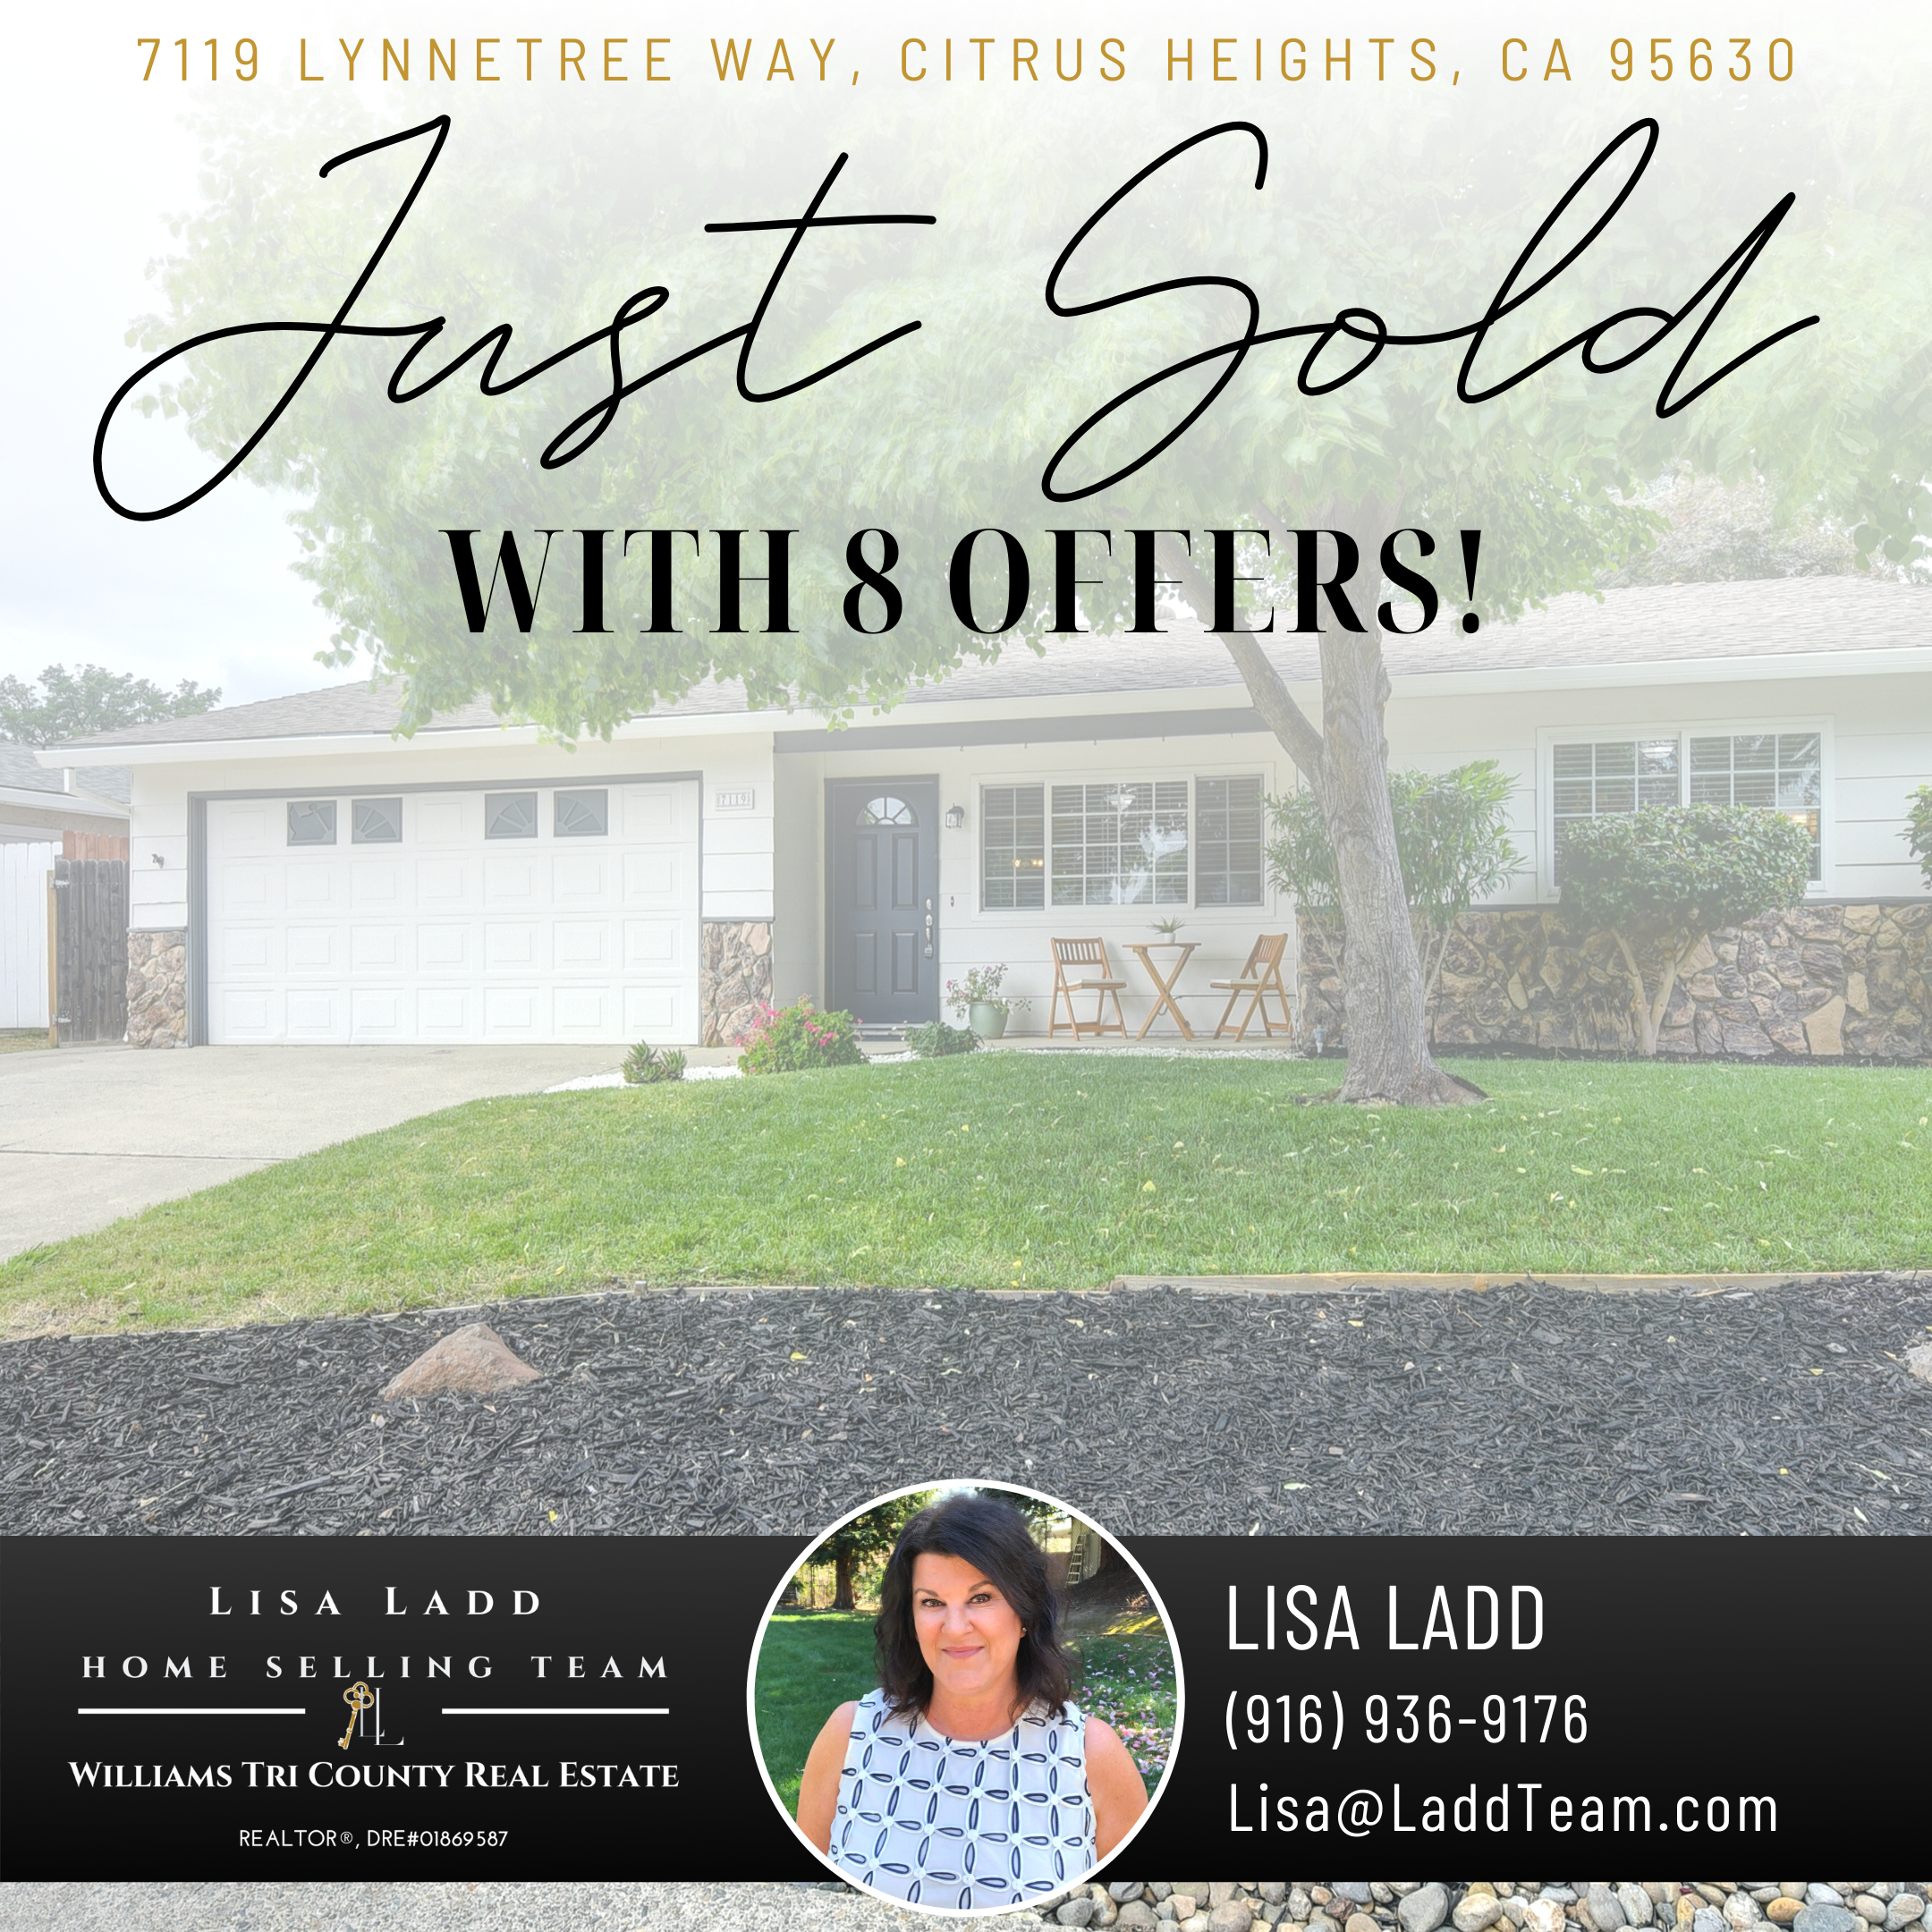 Just Sold With 8 Offers I Know Several Buyers That Are Looking For Similar Homes Message Me If You Want To Di In 2020 Things To Sell Offer Citrus Heights